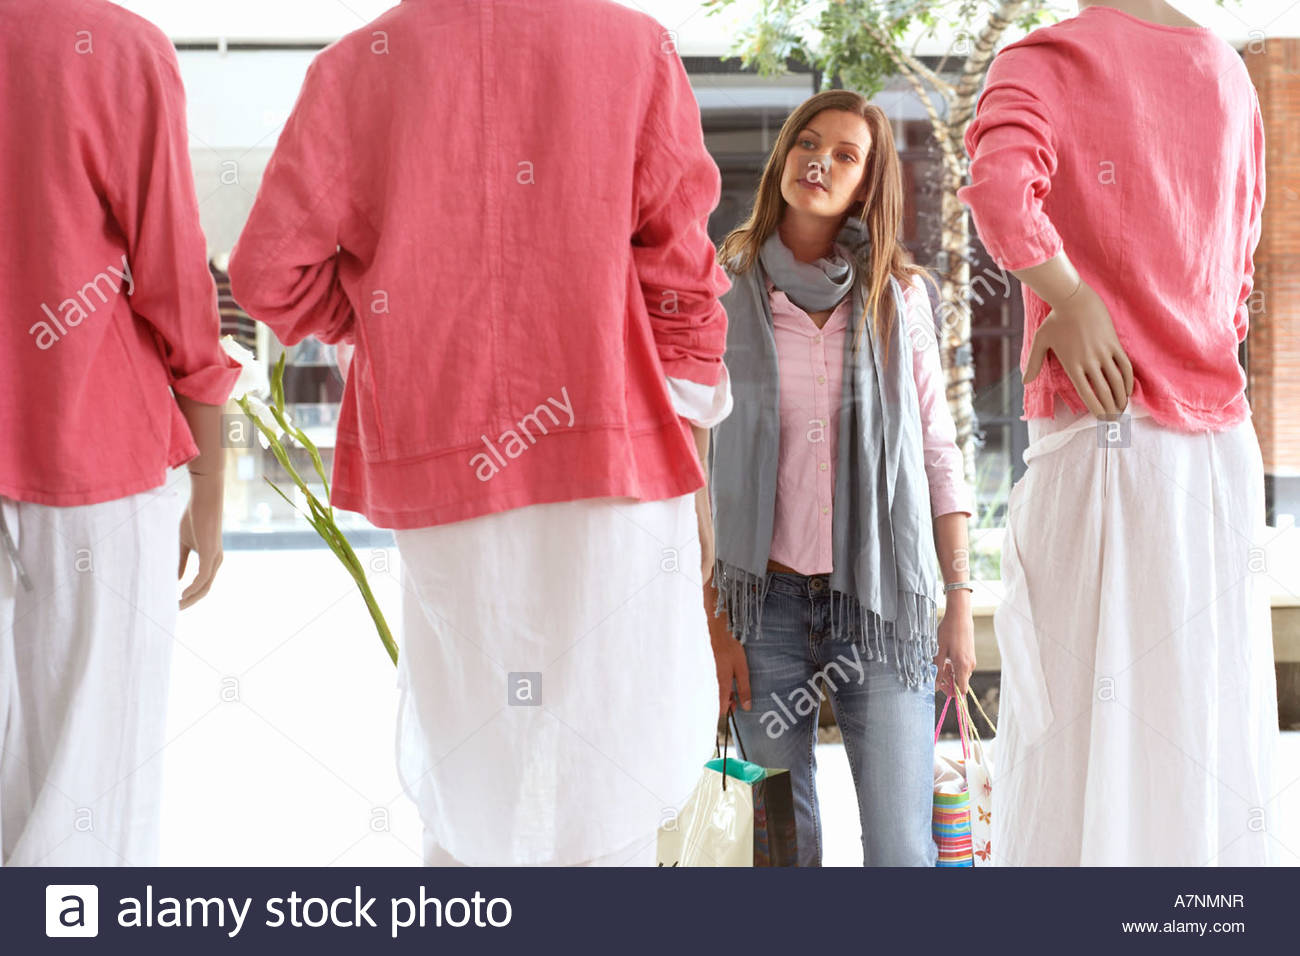 Woman window shopping looking at three mannequins wearing pink tops and white skirts in clothes shop - Stock Image